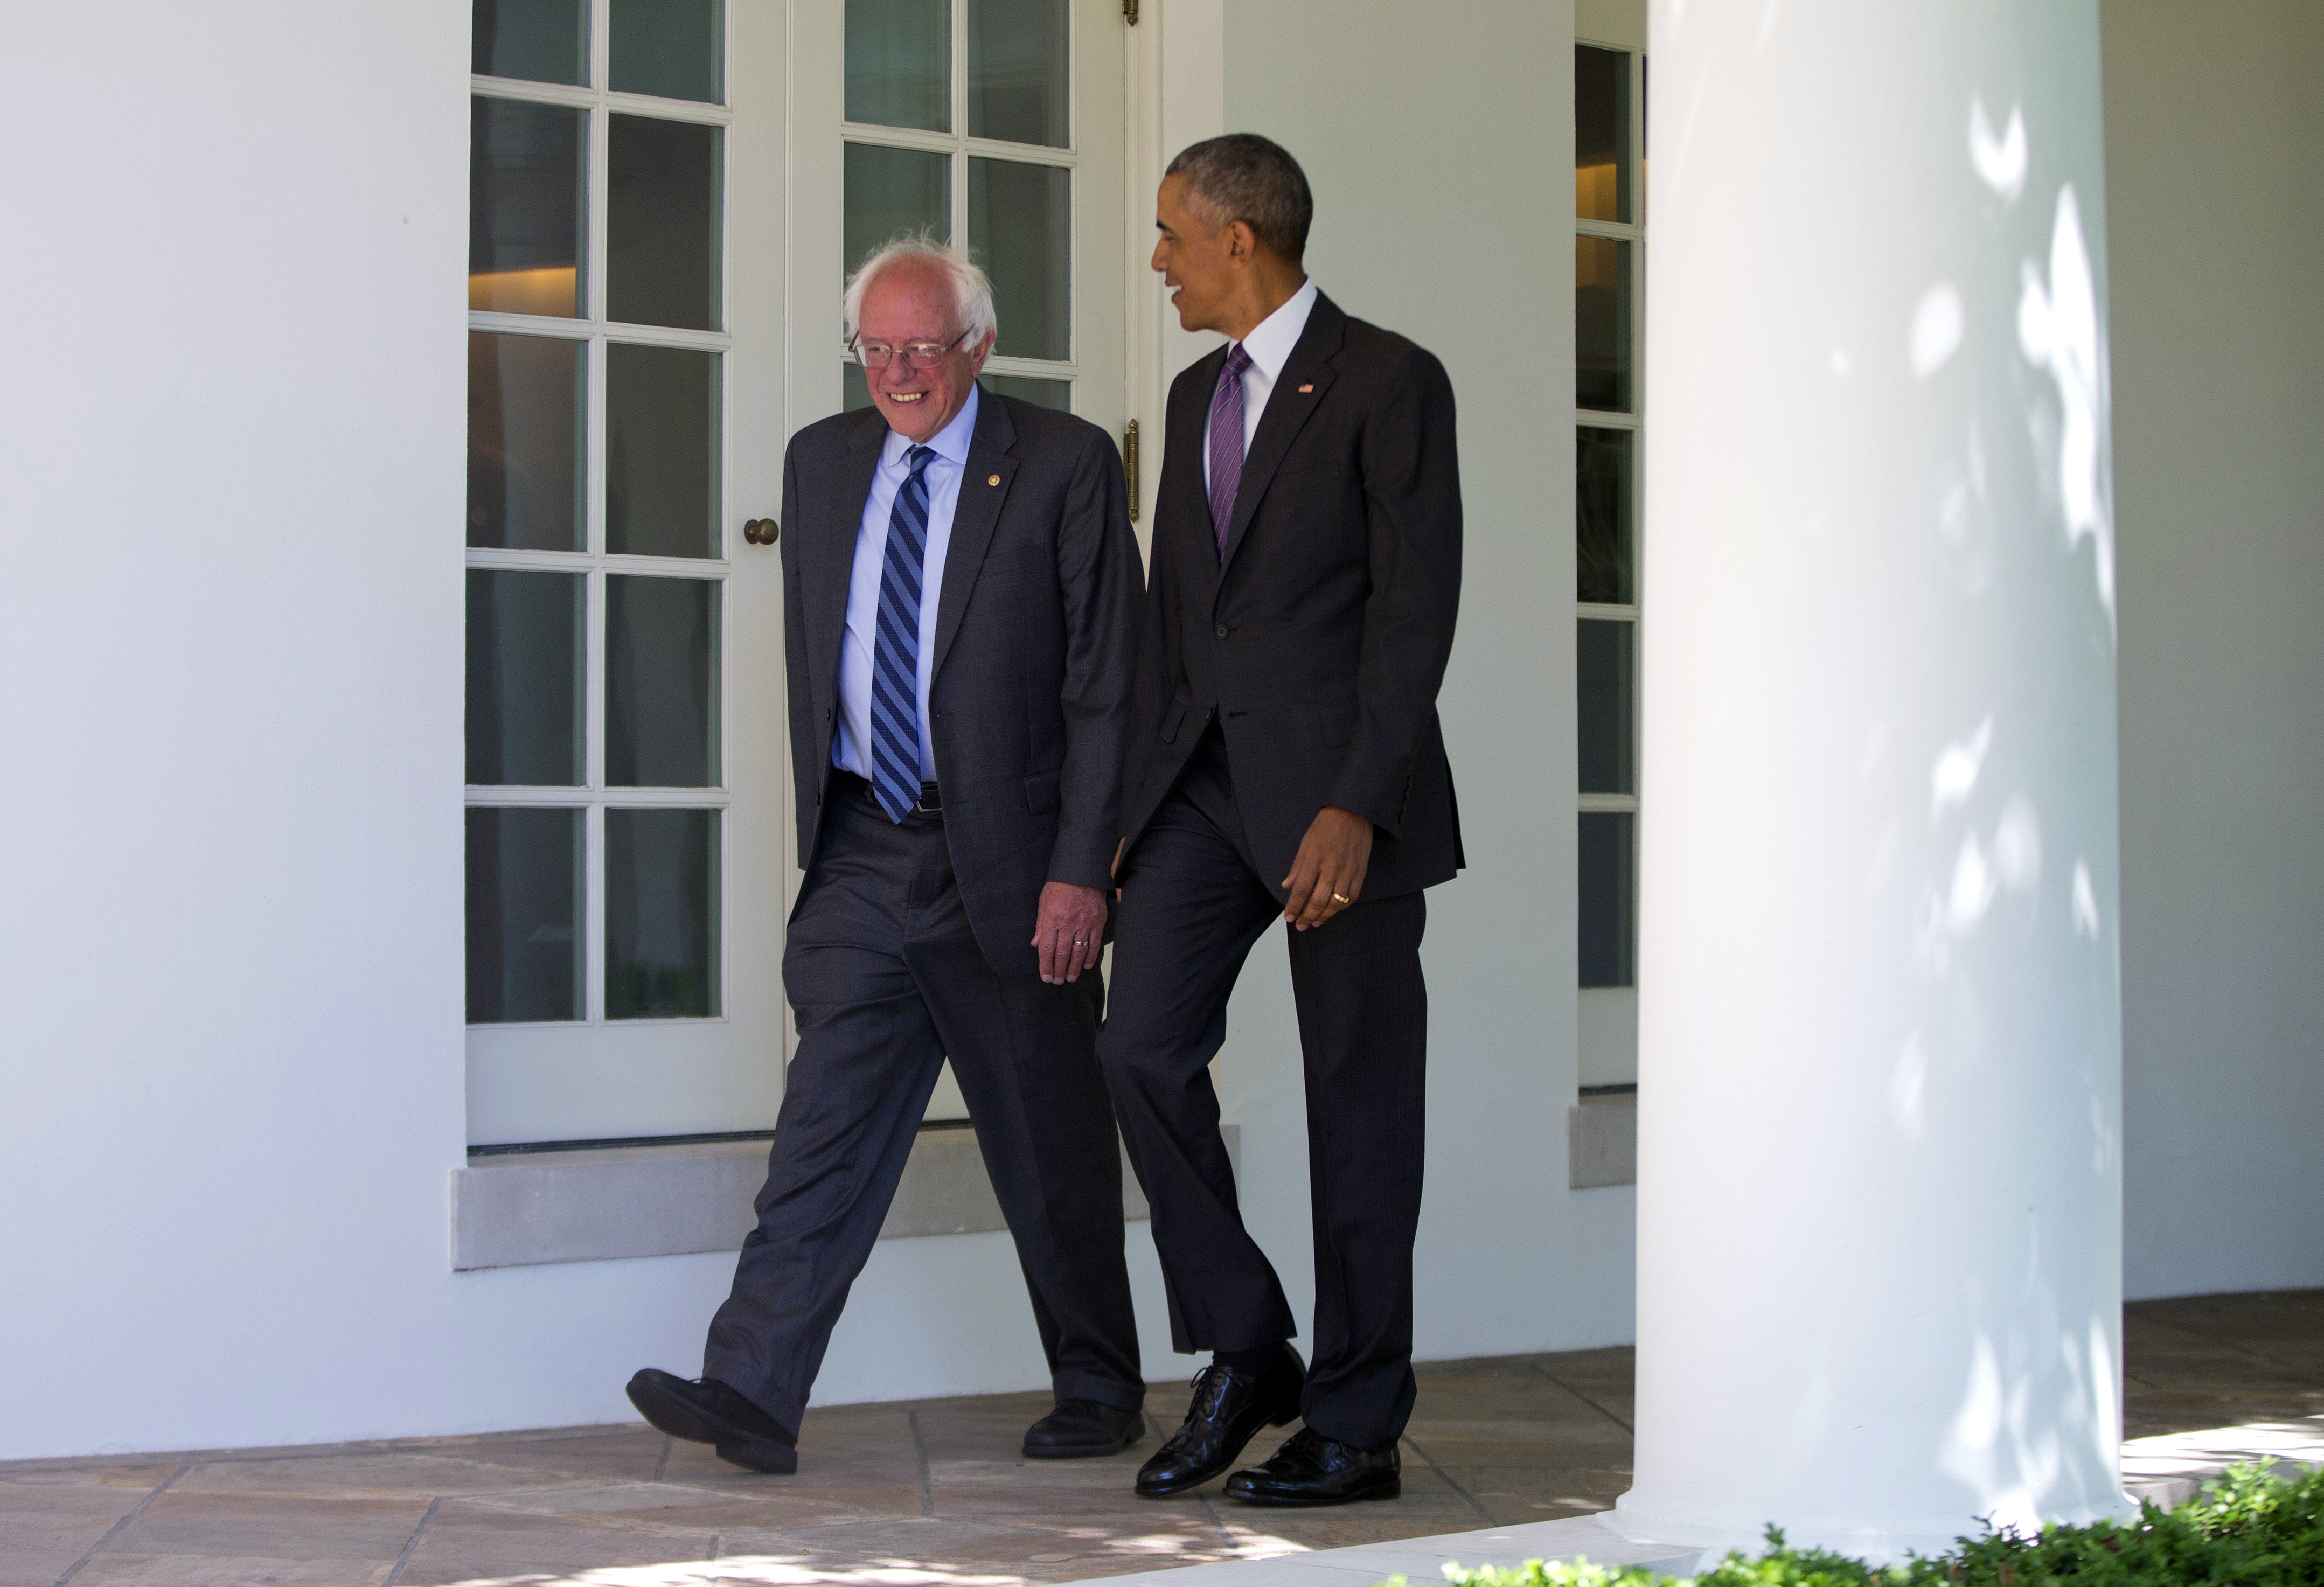 President Barack Obama walks with Democratic presidential candidate Sen. Bernie Sanders, I-Vt., down the Colonnade of the White House in Washington, Thursday, June 9, 2016. (Photo: Pablo Martinez/AP)